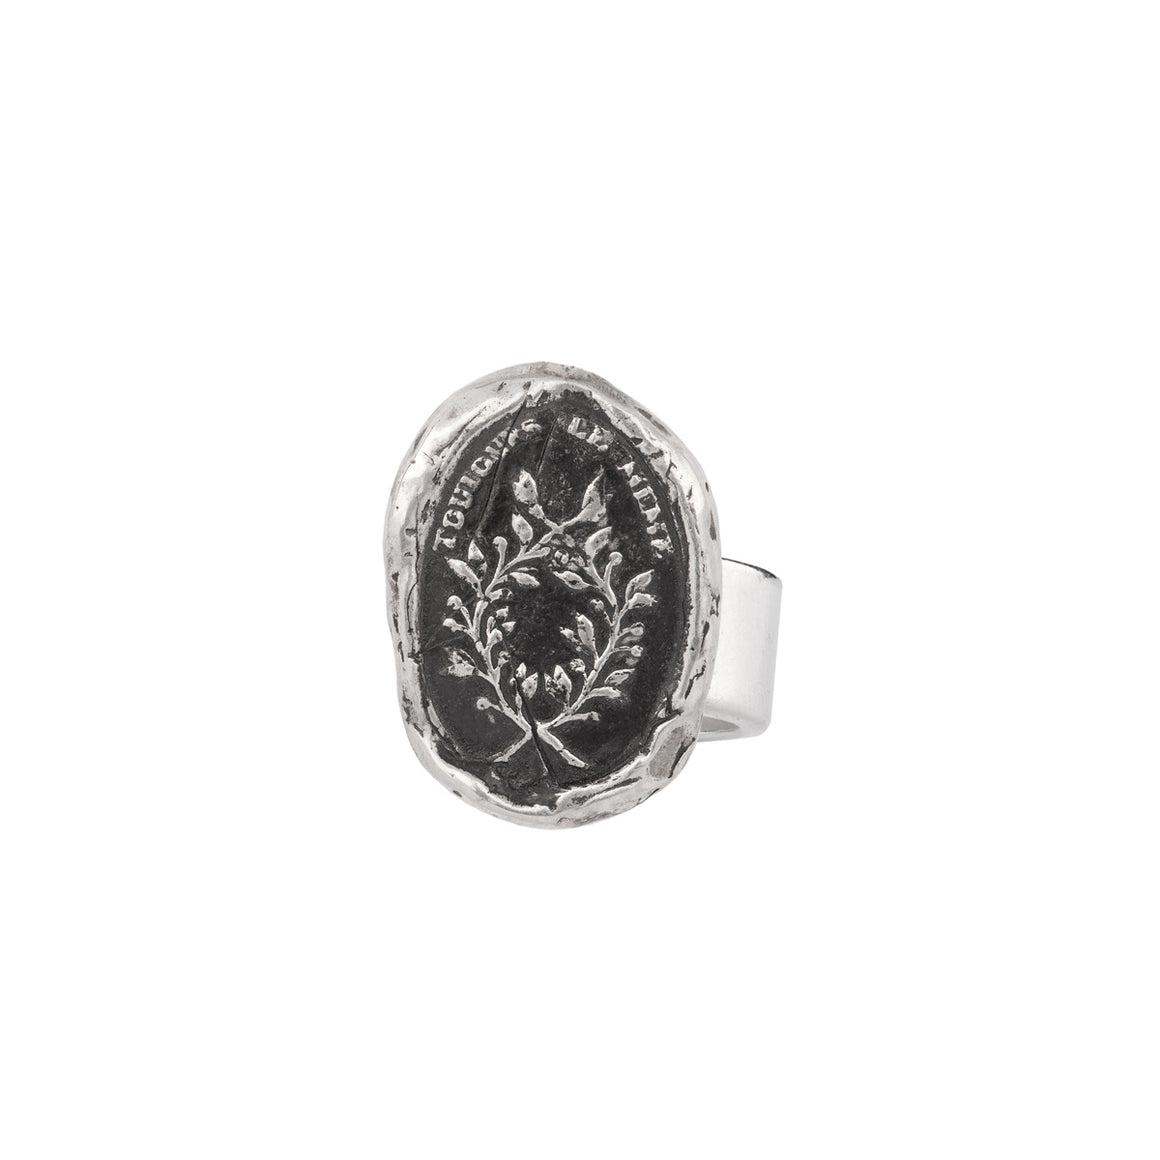 INTEGRITY RING PYRRHA TALISMAN RING - SIZE 7